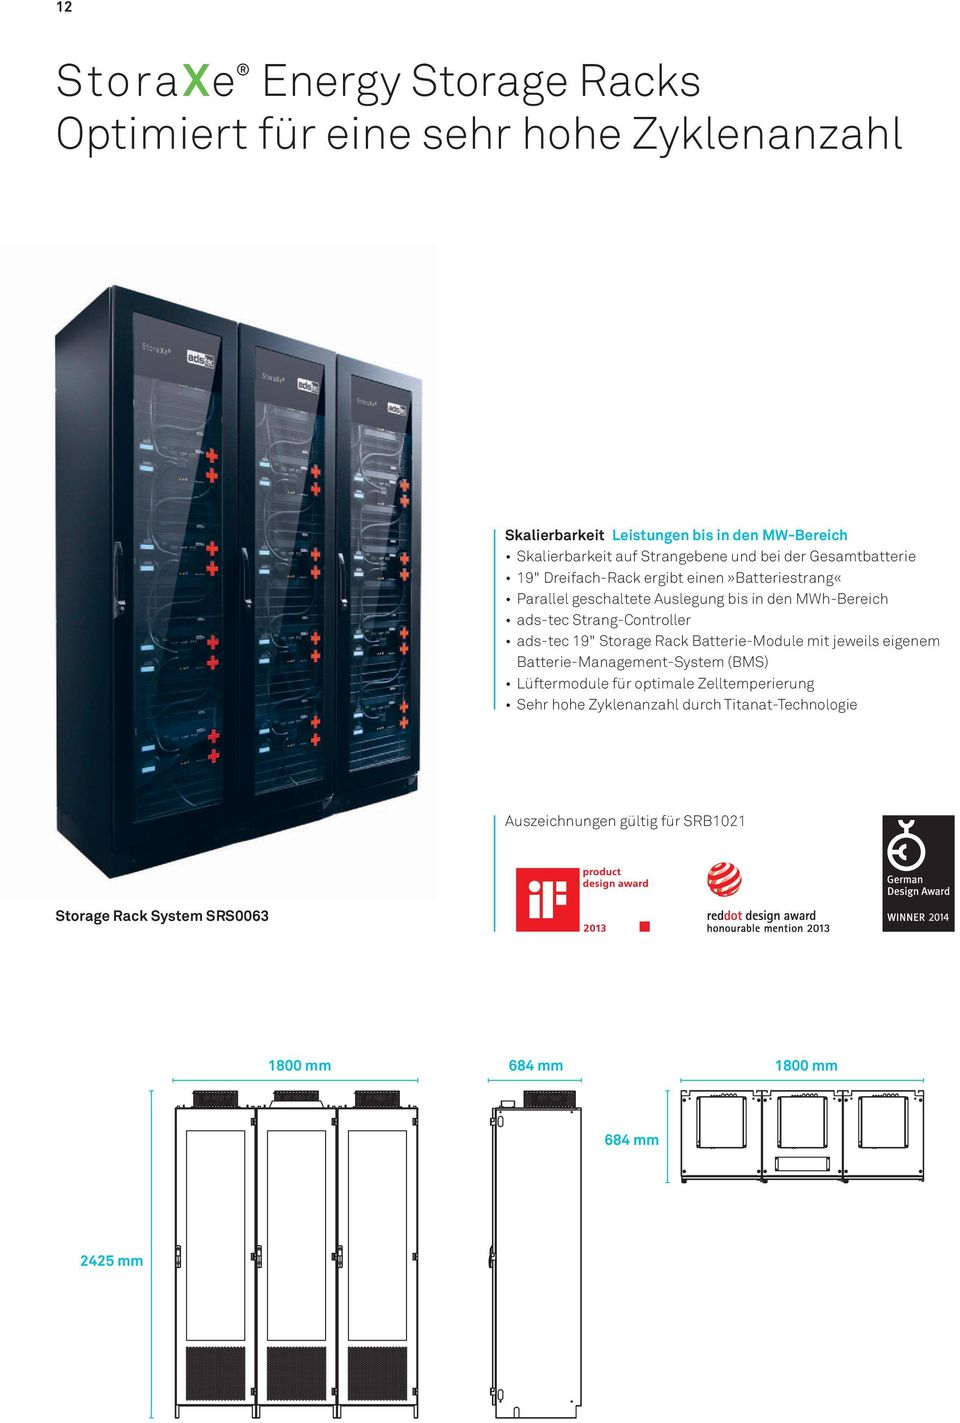 "Strang-Controller ads-tec 19"" Storage Rack Batterie-Module mit jeweils eigenem Batterie-Management-System (BMS) Lüftermodule für optimale"